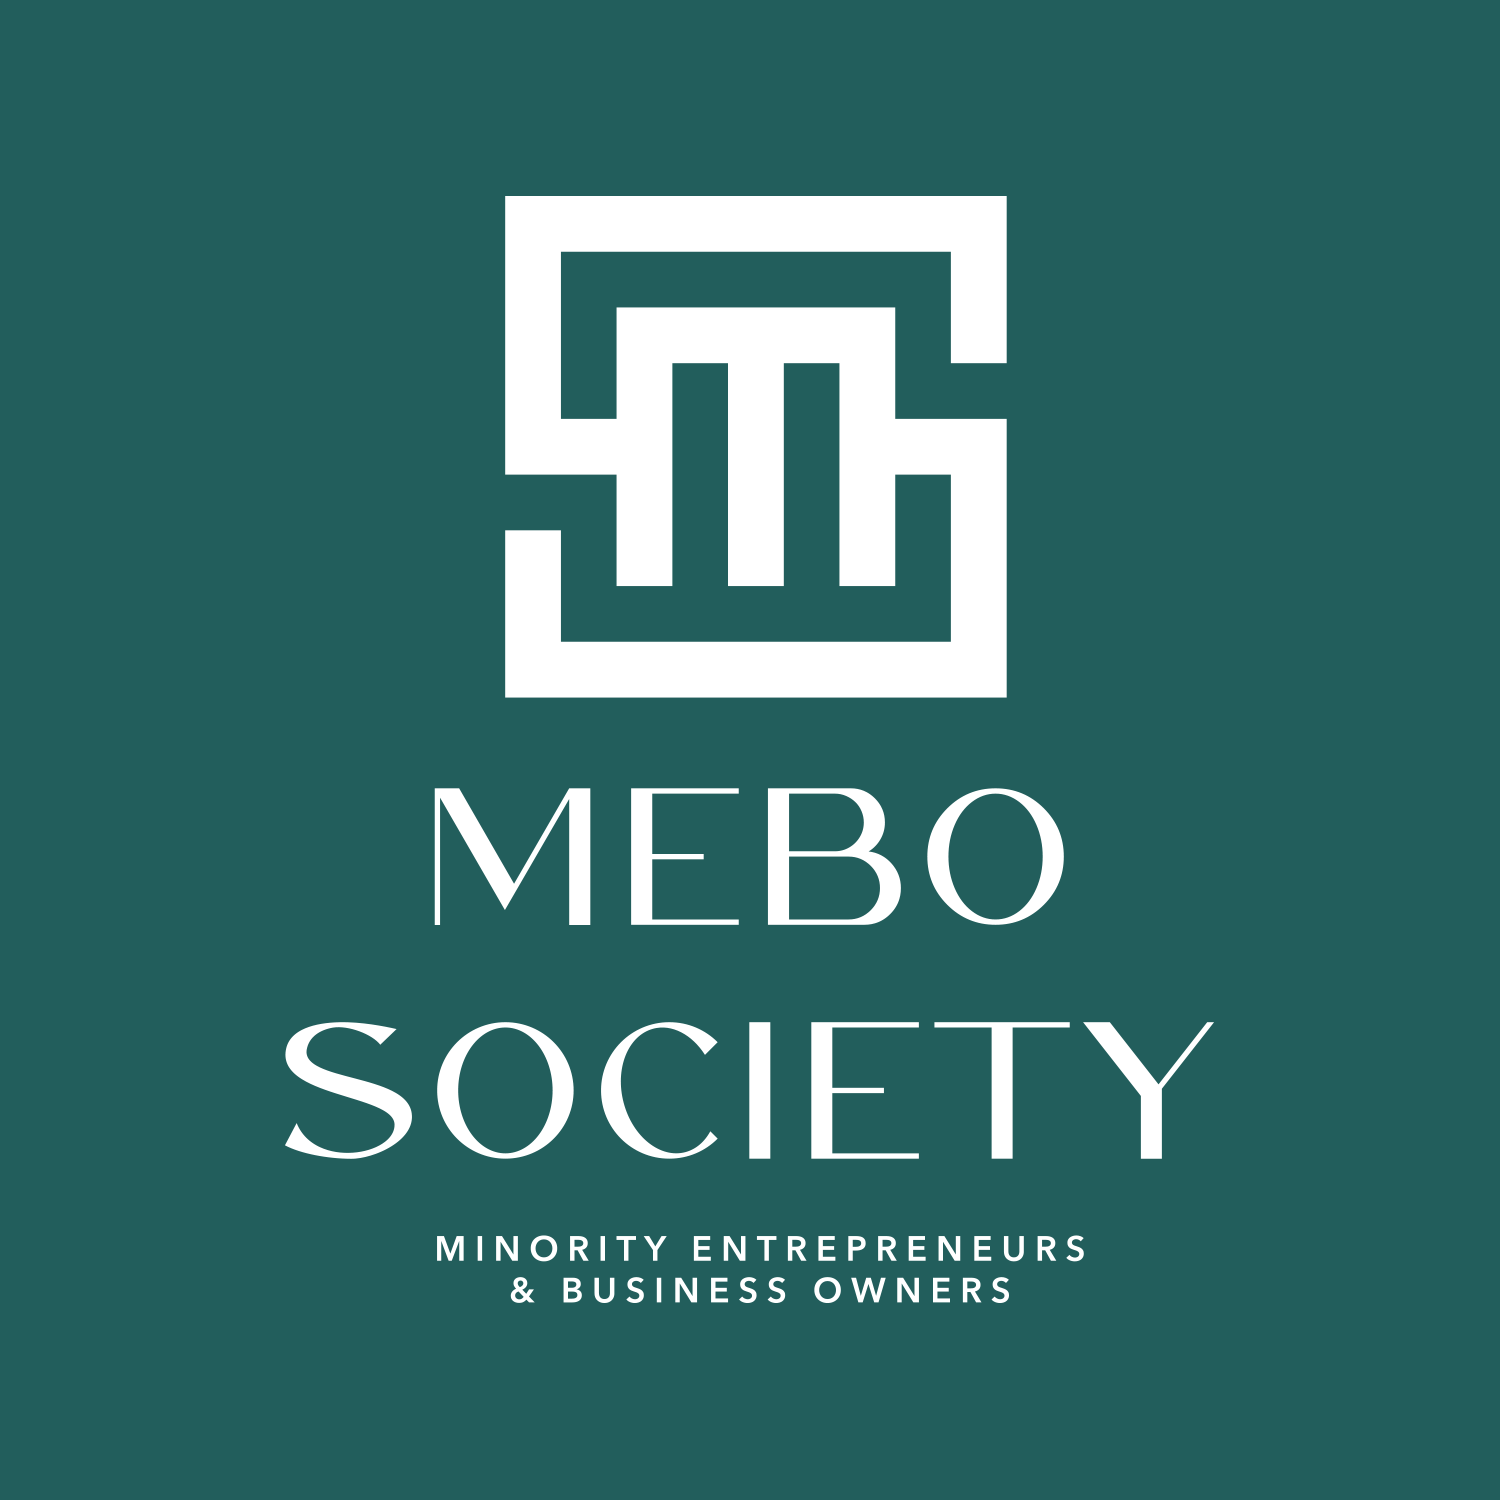 MEBO Society - Minority Entrepreneurs & Business Owners - www.mebosociety.com - Green /White Logo